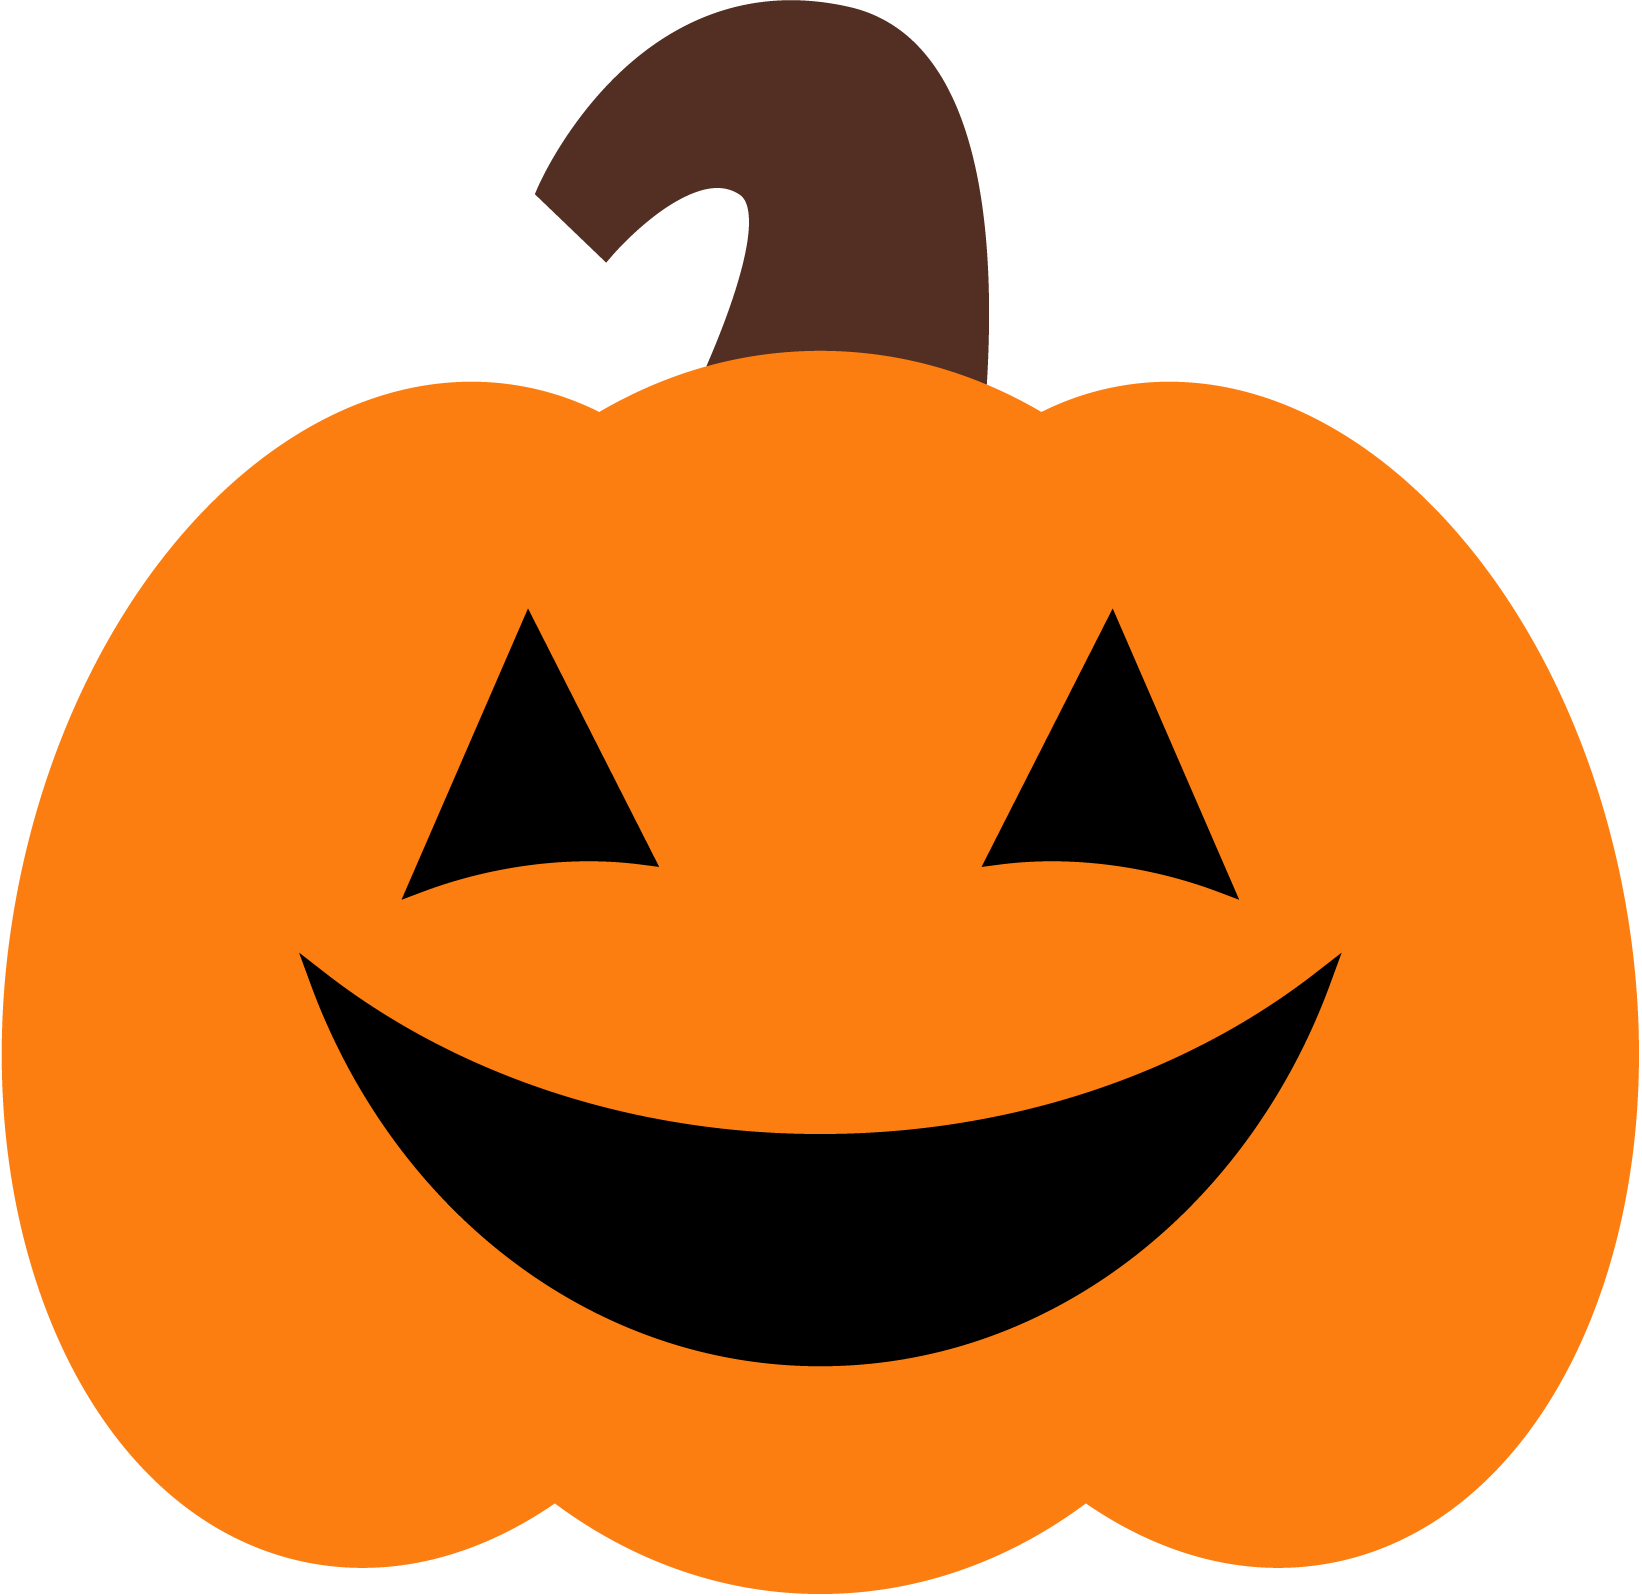 Pumpkin with cut for face clipart png royalty free download Halloween Pumpkin Clipart at GetDrawings.com | Free for personal use ... png royalty free download